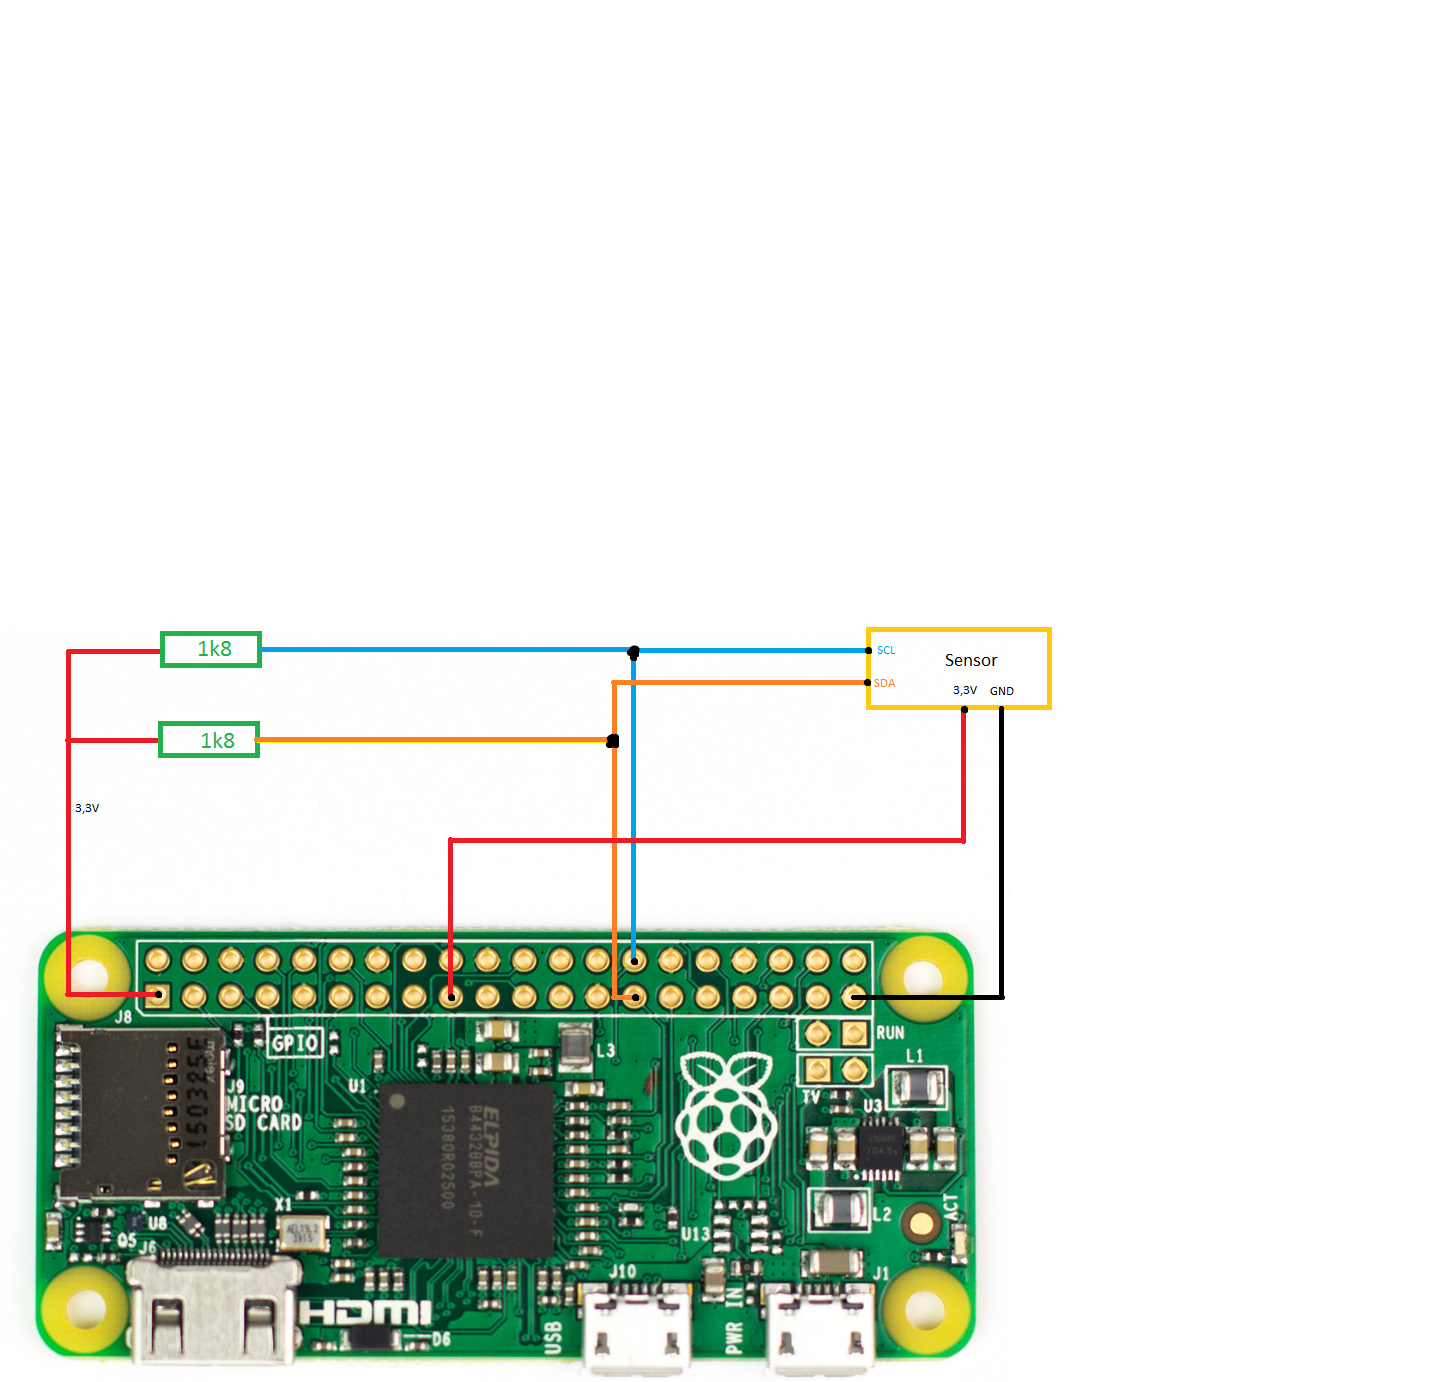 solved) i2c-0 (Pin 27/28) on a Pi Zero - Raspberry Pi Forums